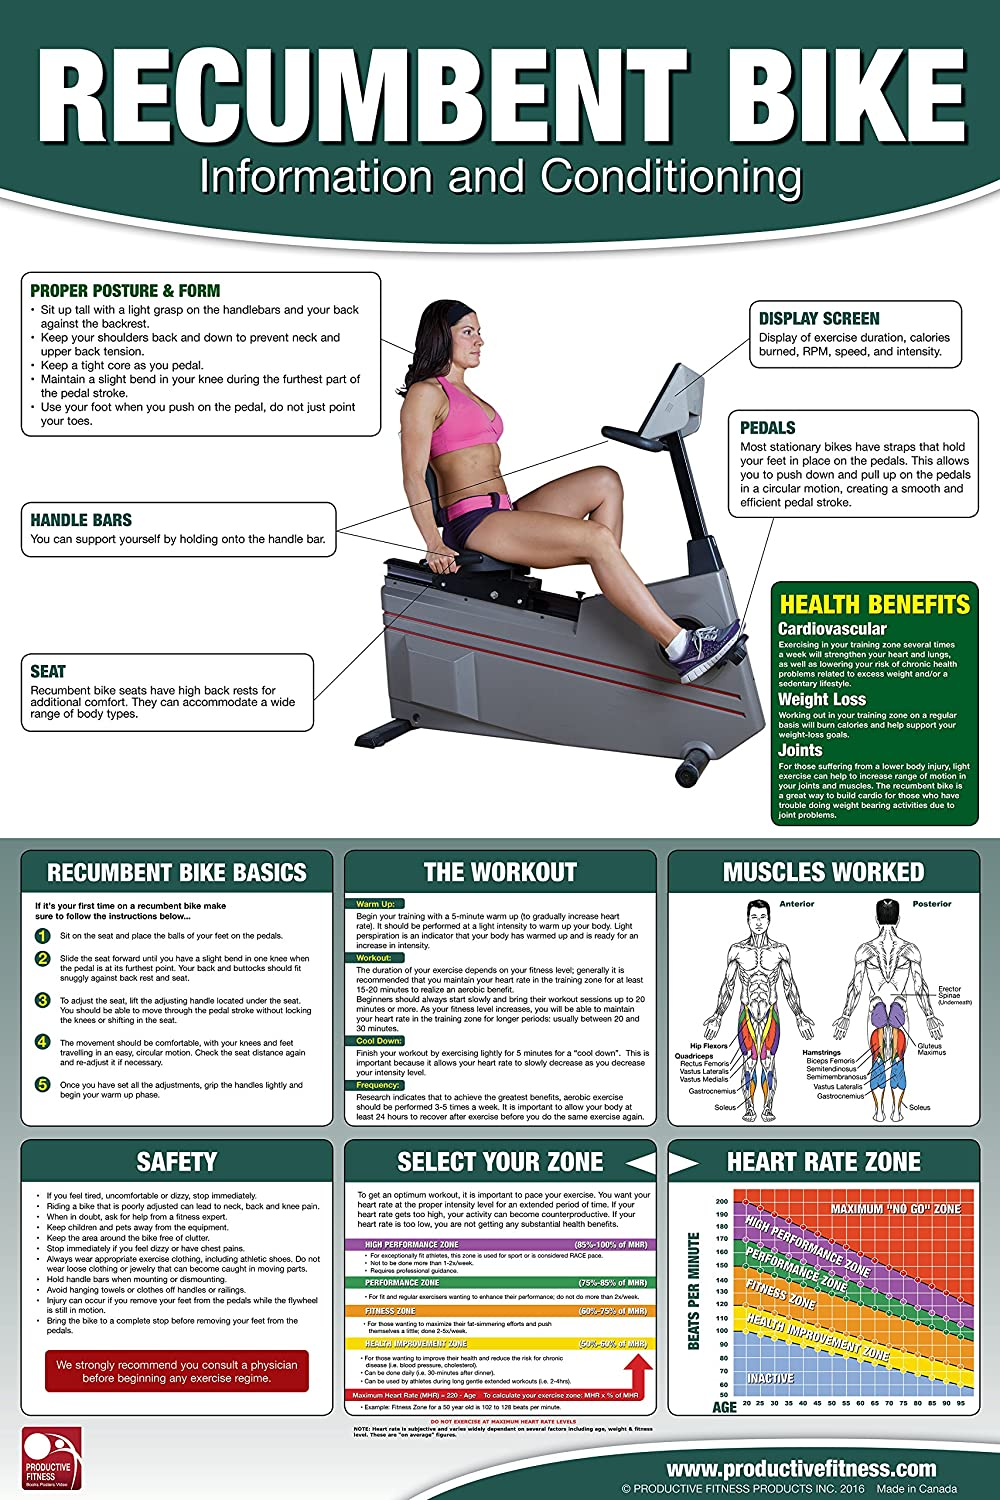 1773290355 Recumbent Bike Poster/Chart; Recumbent Bike Poster - Exercise Bike - Stationary Cycle - Laid Back Bike Poster - Stationary Bike Chart - Workout Poster - Cardio Cachine Poster - Cardio Bike Poster 91ecks15swL